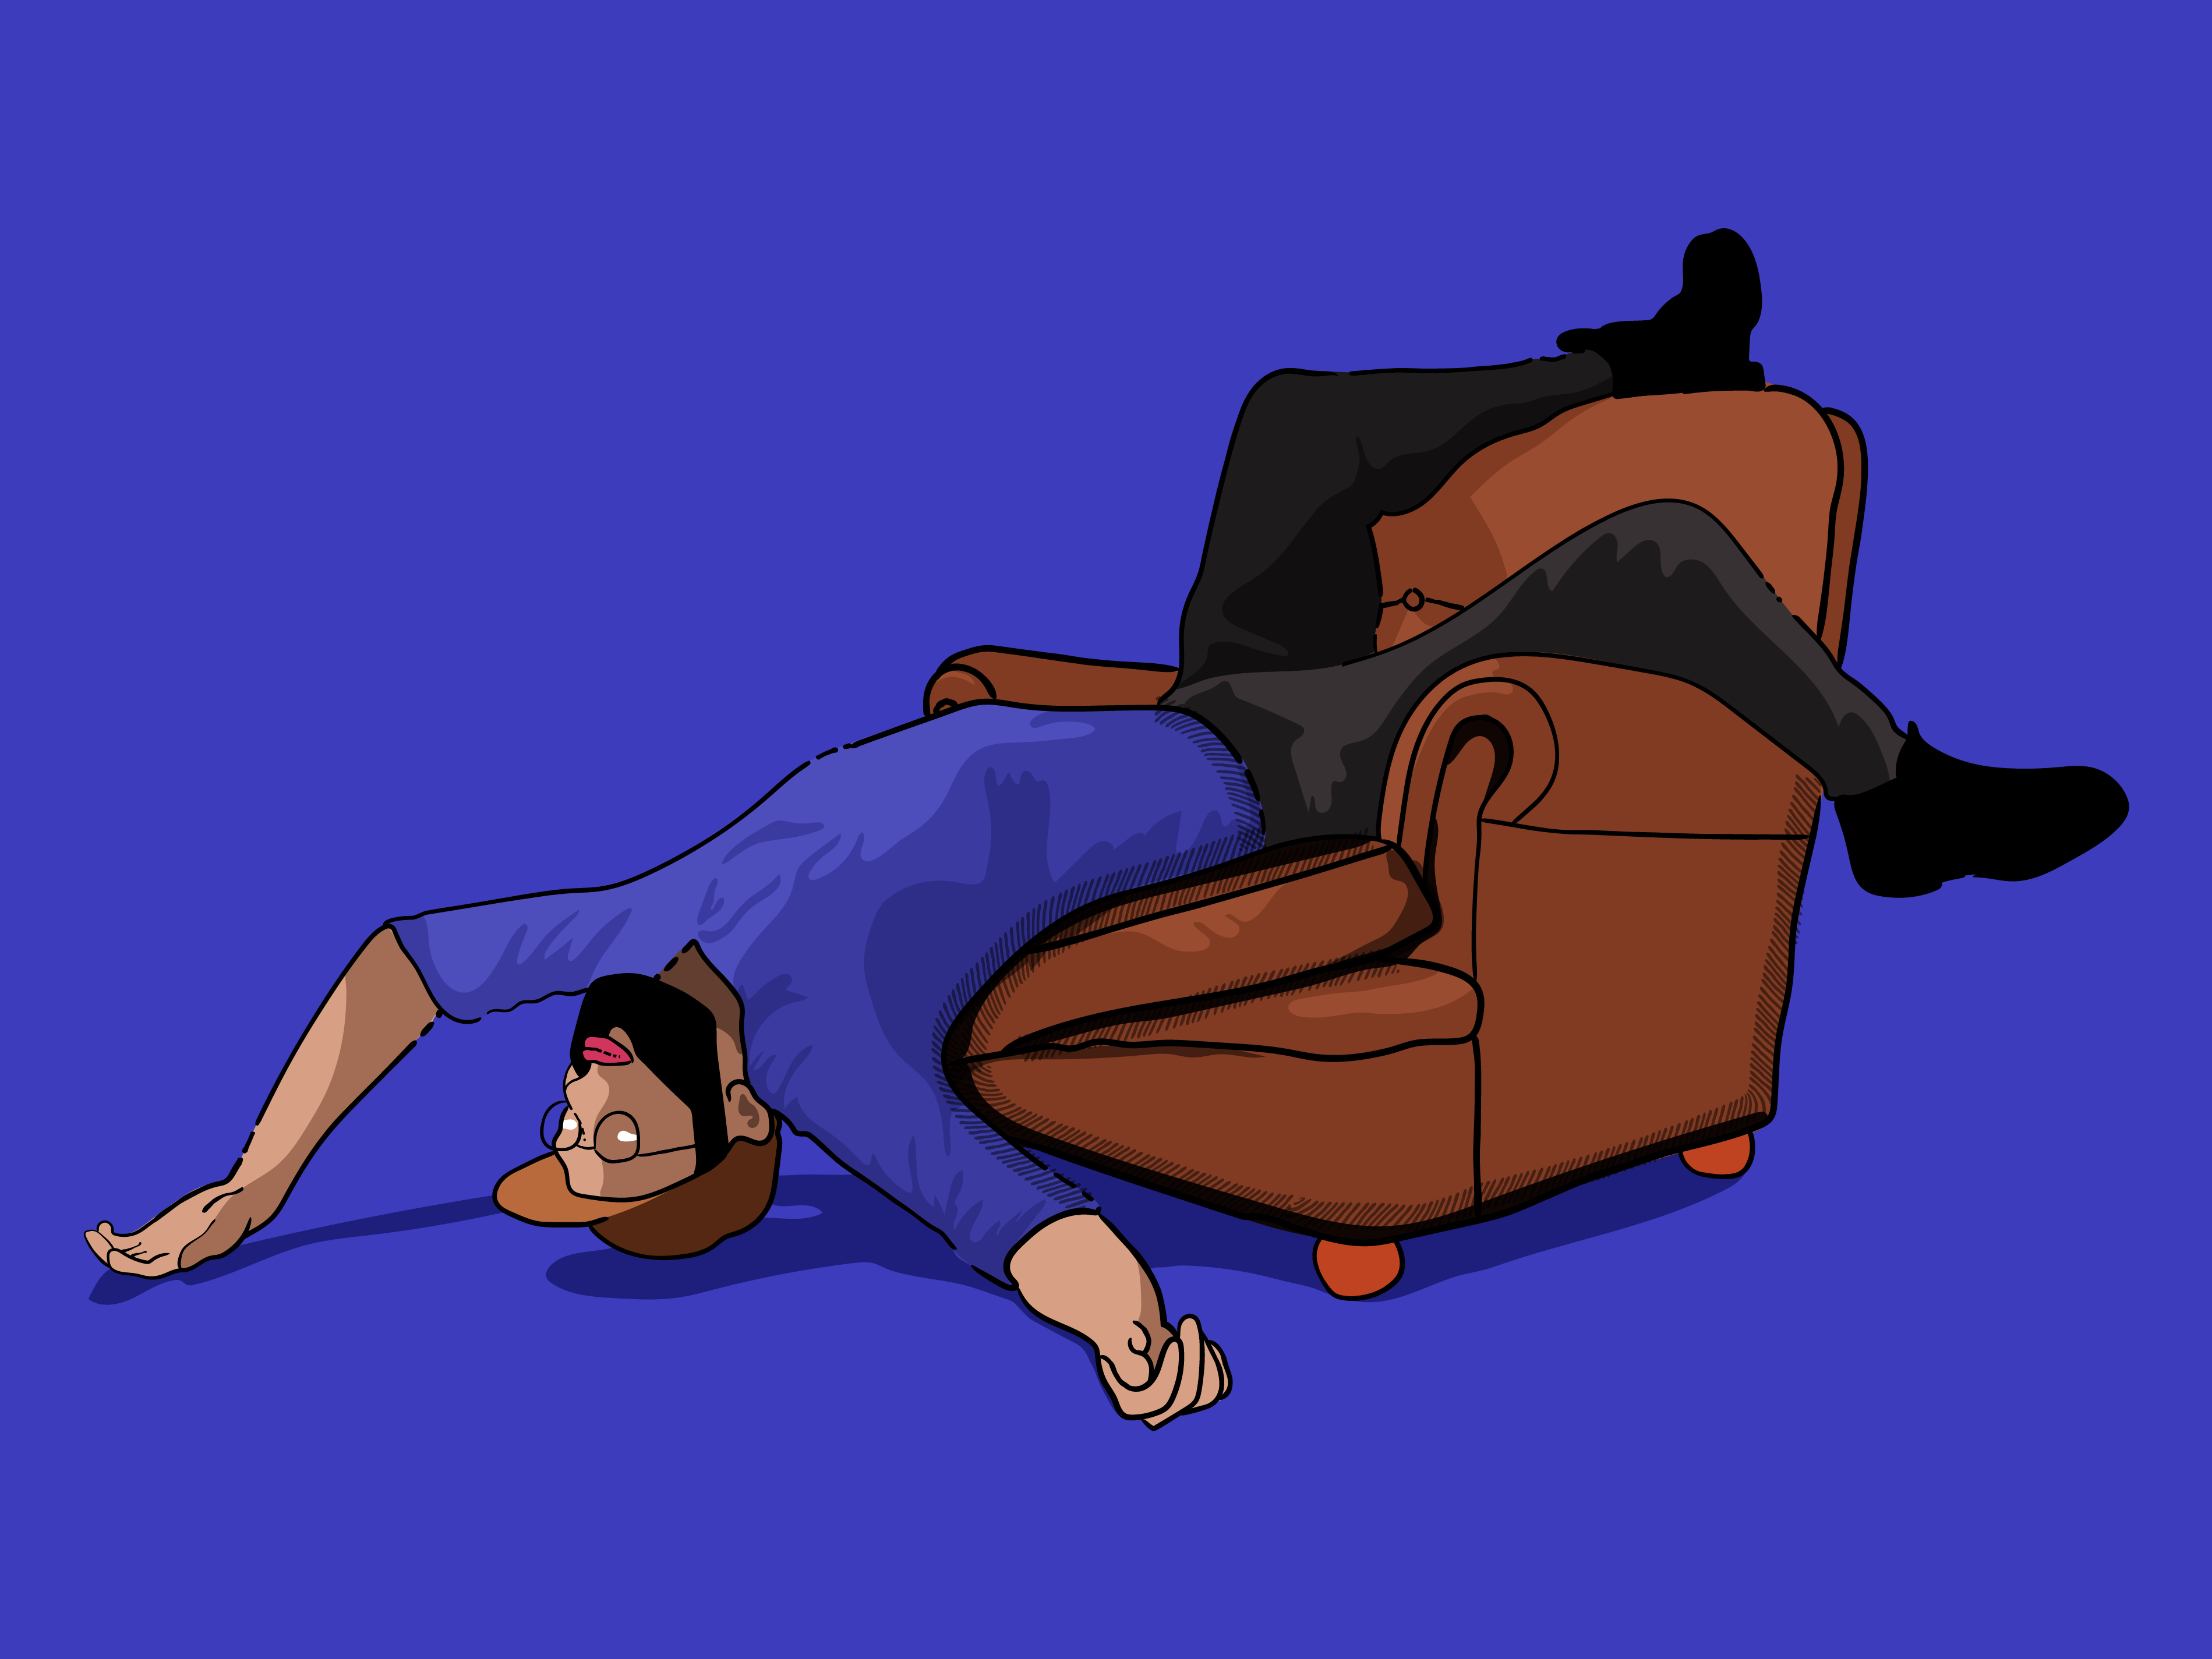 Dylan upside down on chair   dribbble 3x